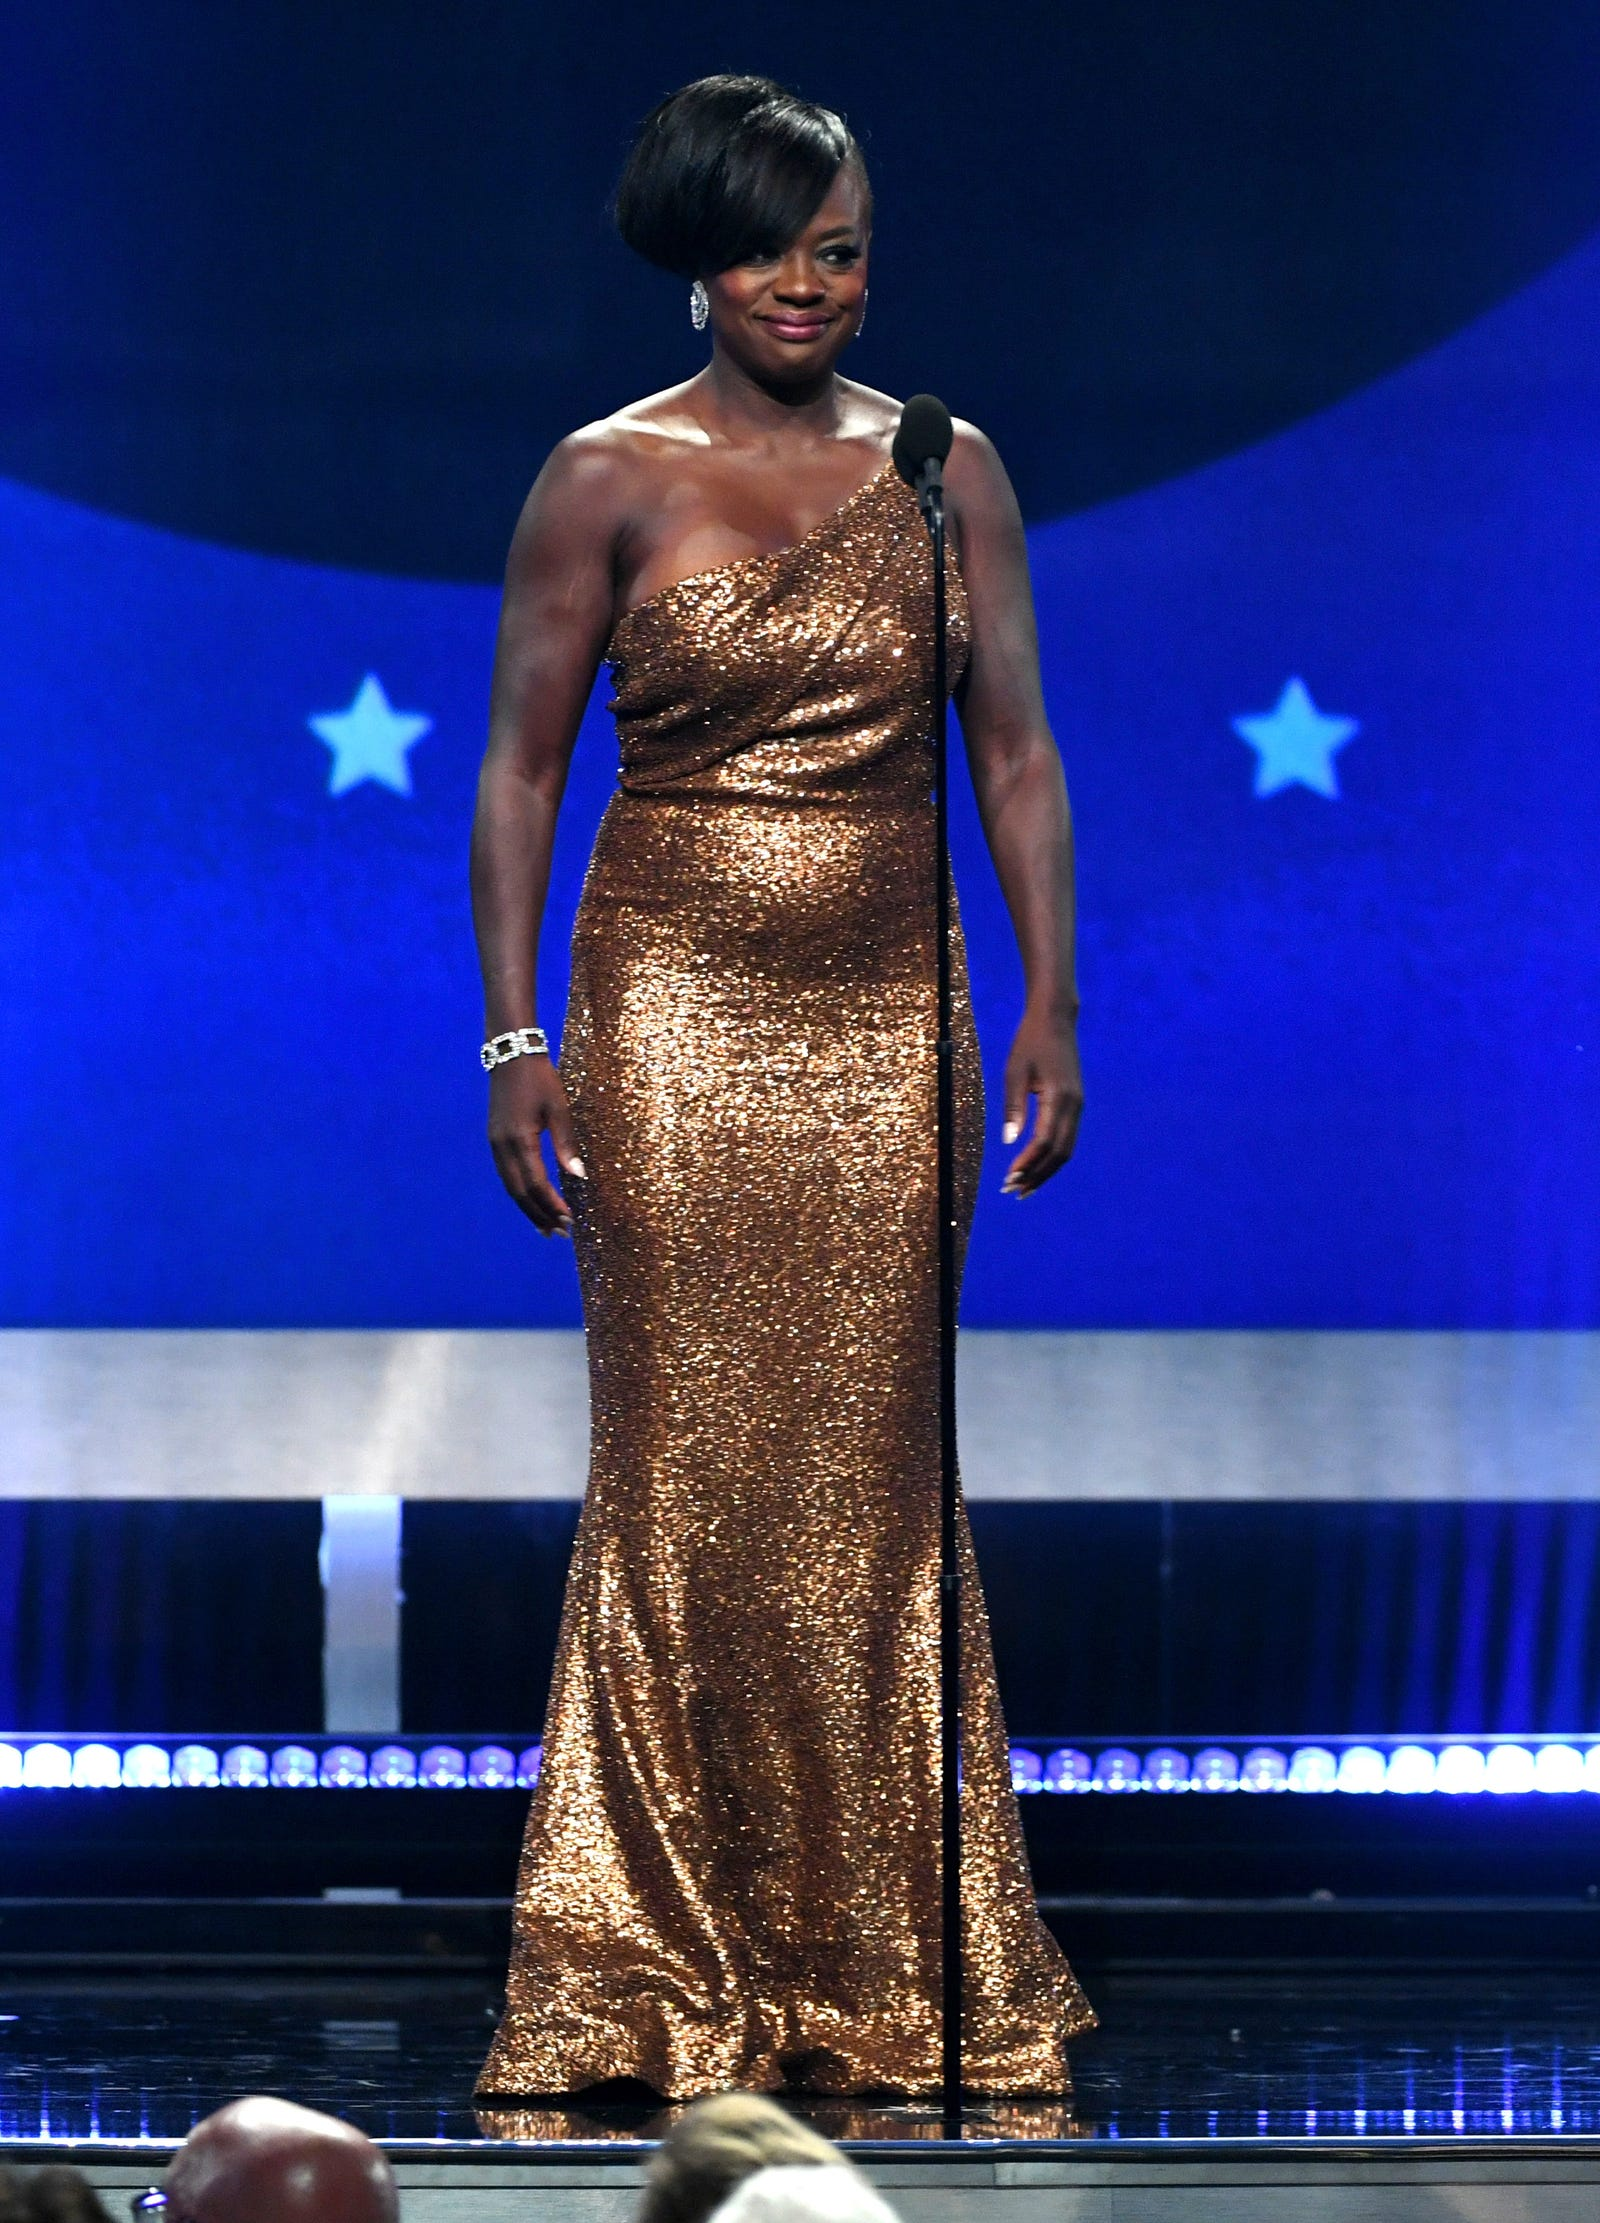 Viola Davis in Michael Kors.